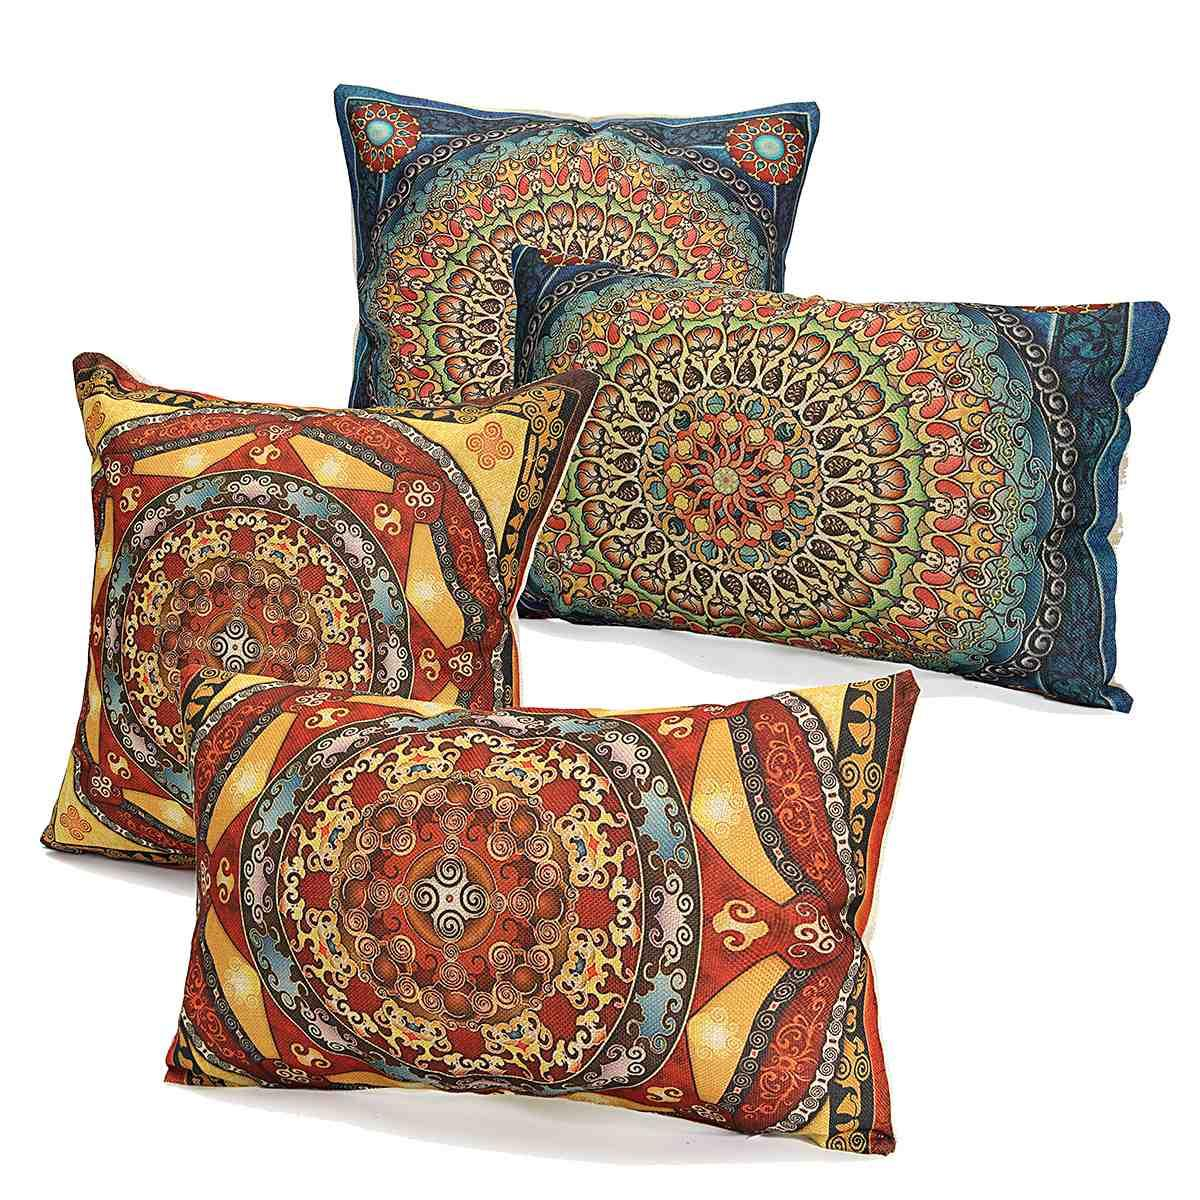 wholesale cotton linen pillow case square cushion rectangle covering fabric wedding home lover. Black Bedroom Furniture Sets. Home Design Ideas